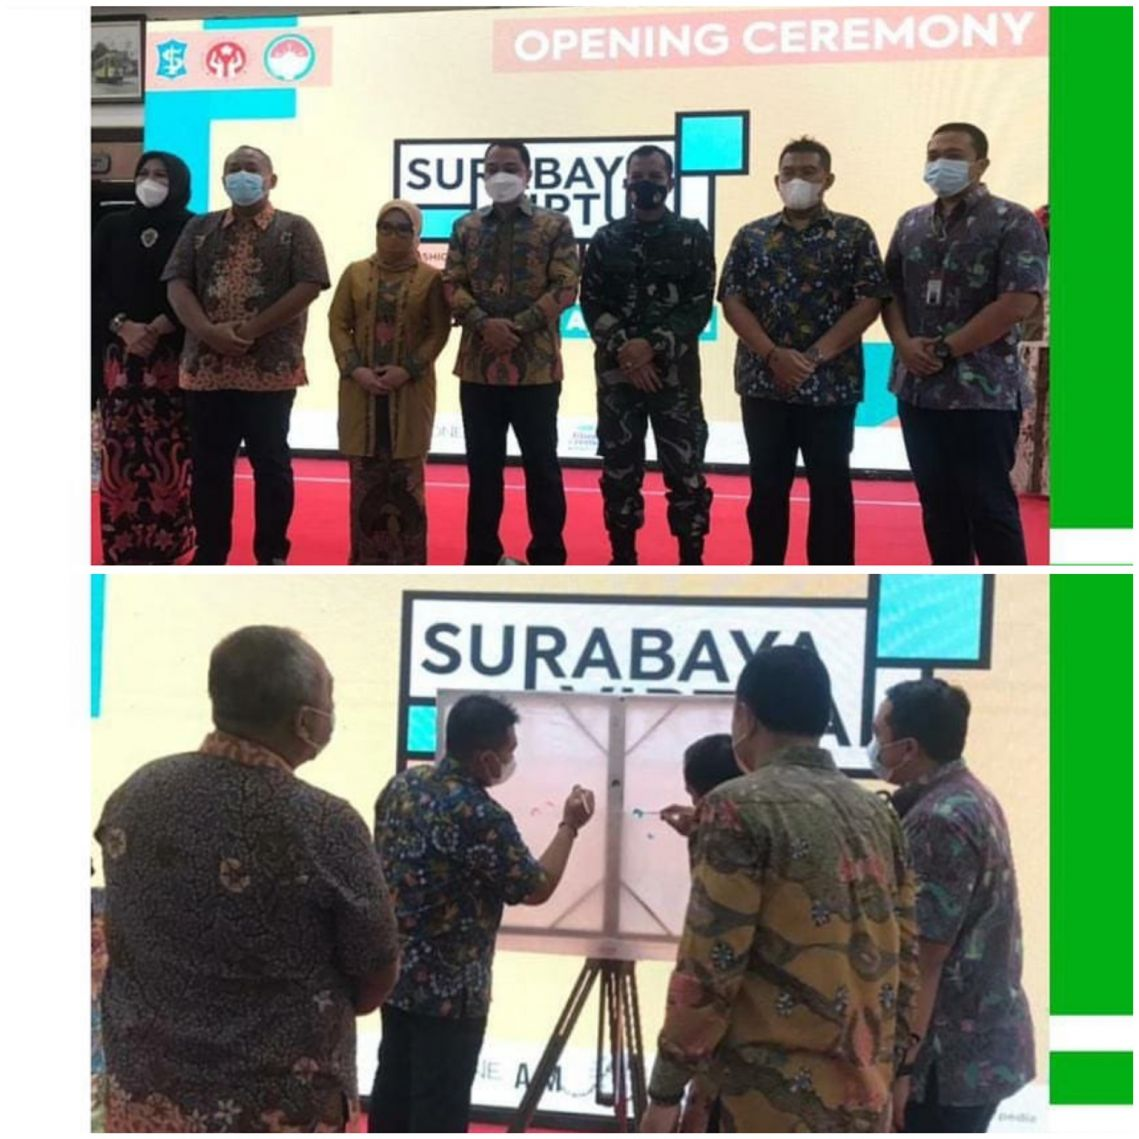 Pembukaan Surabaya Virtual Fashion, Craft and Culinary Expo 2021